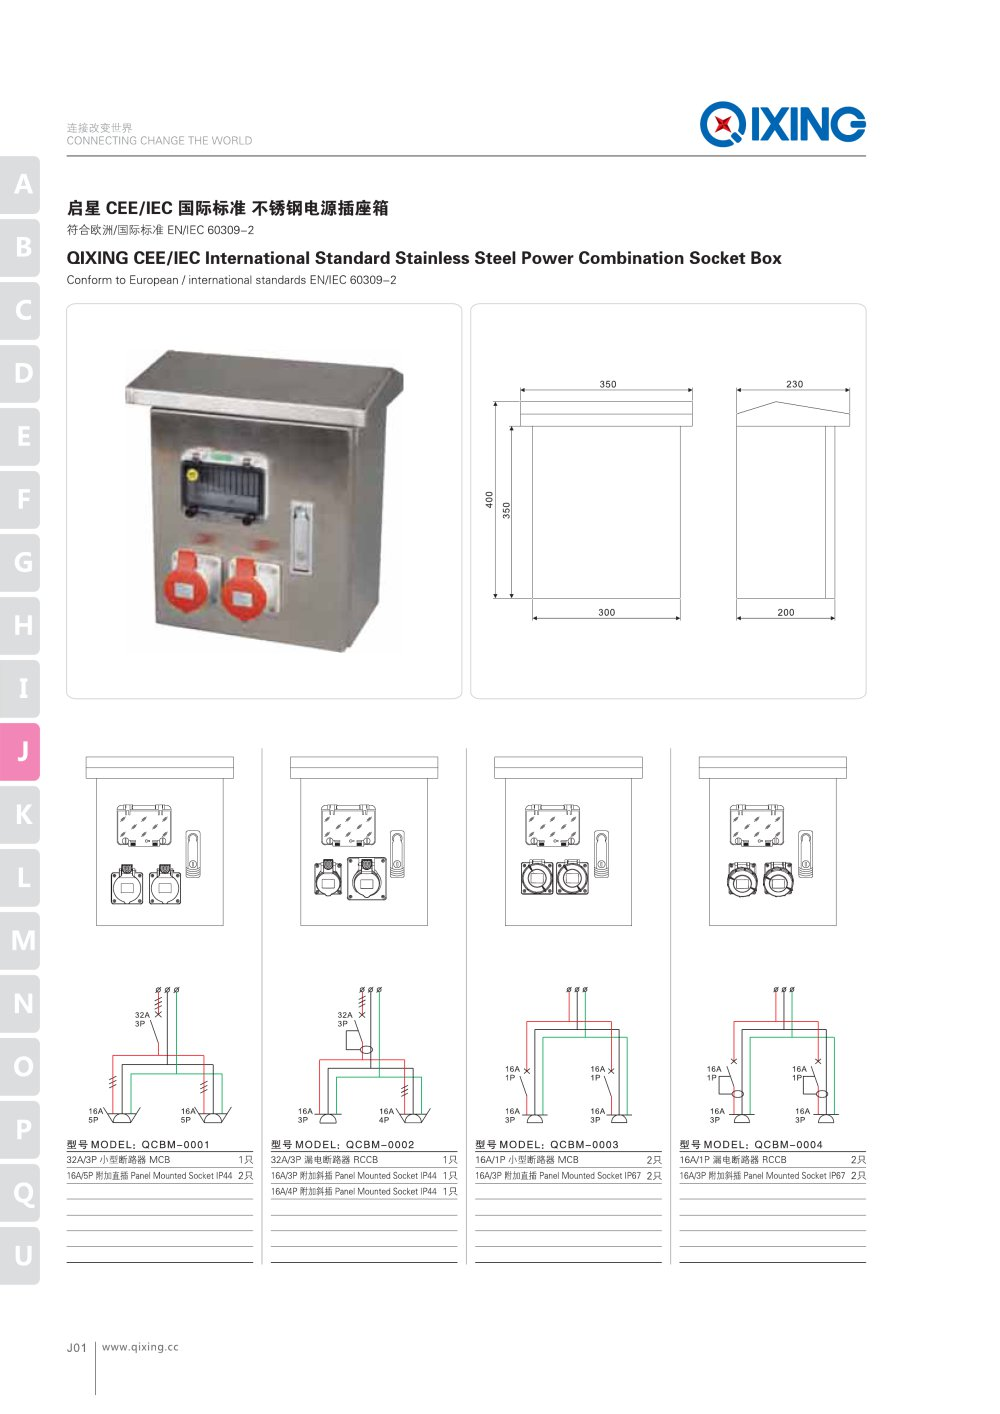 Qixing Cee Iec International Standard Stainless Steel Power Receptacle Wiring Diagram Combination Socket Box 1 3 Pages